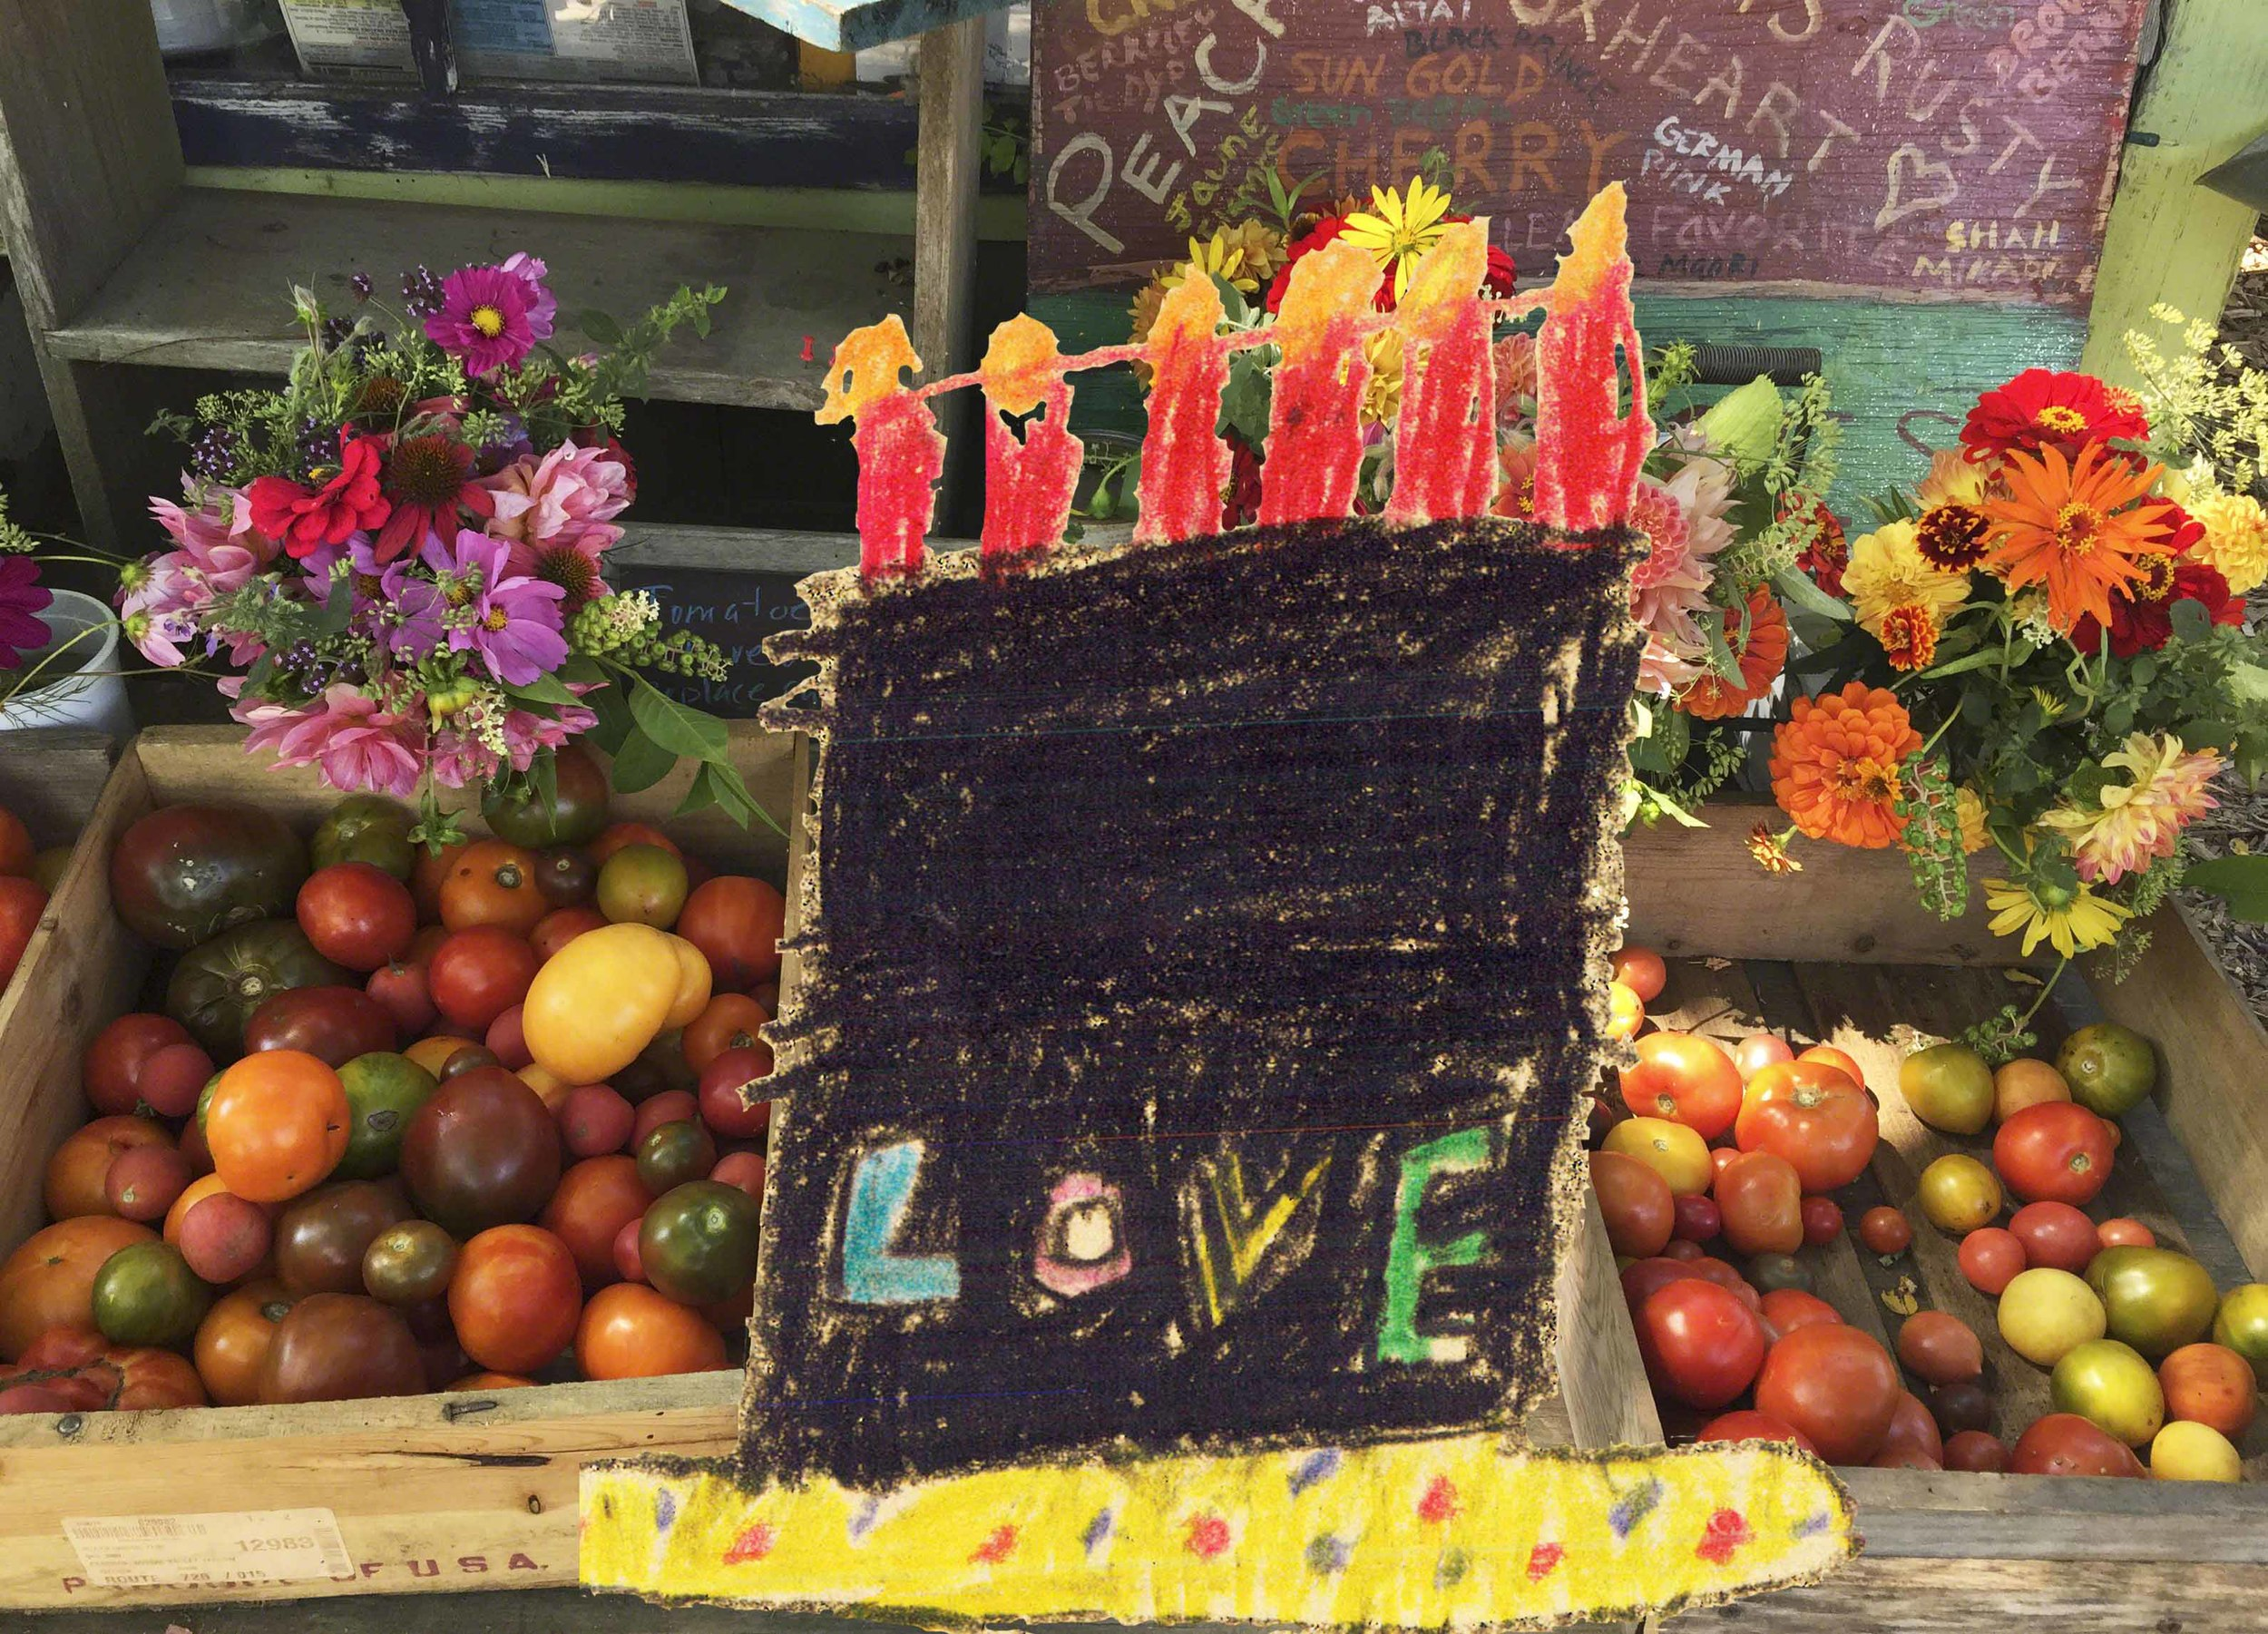 Low Res Love Cake at farmstand.jpg